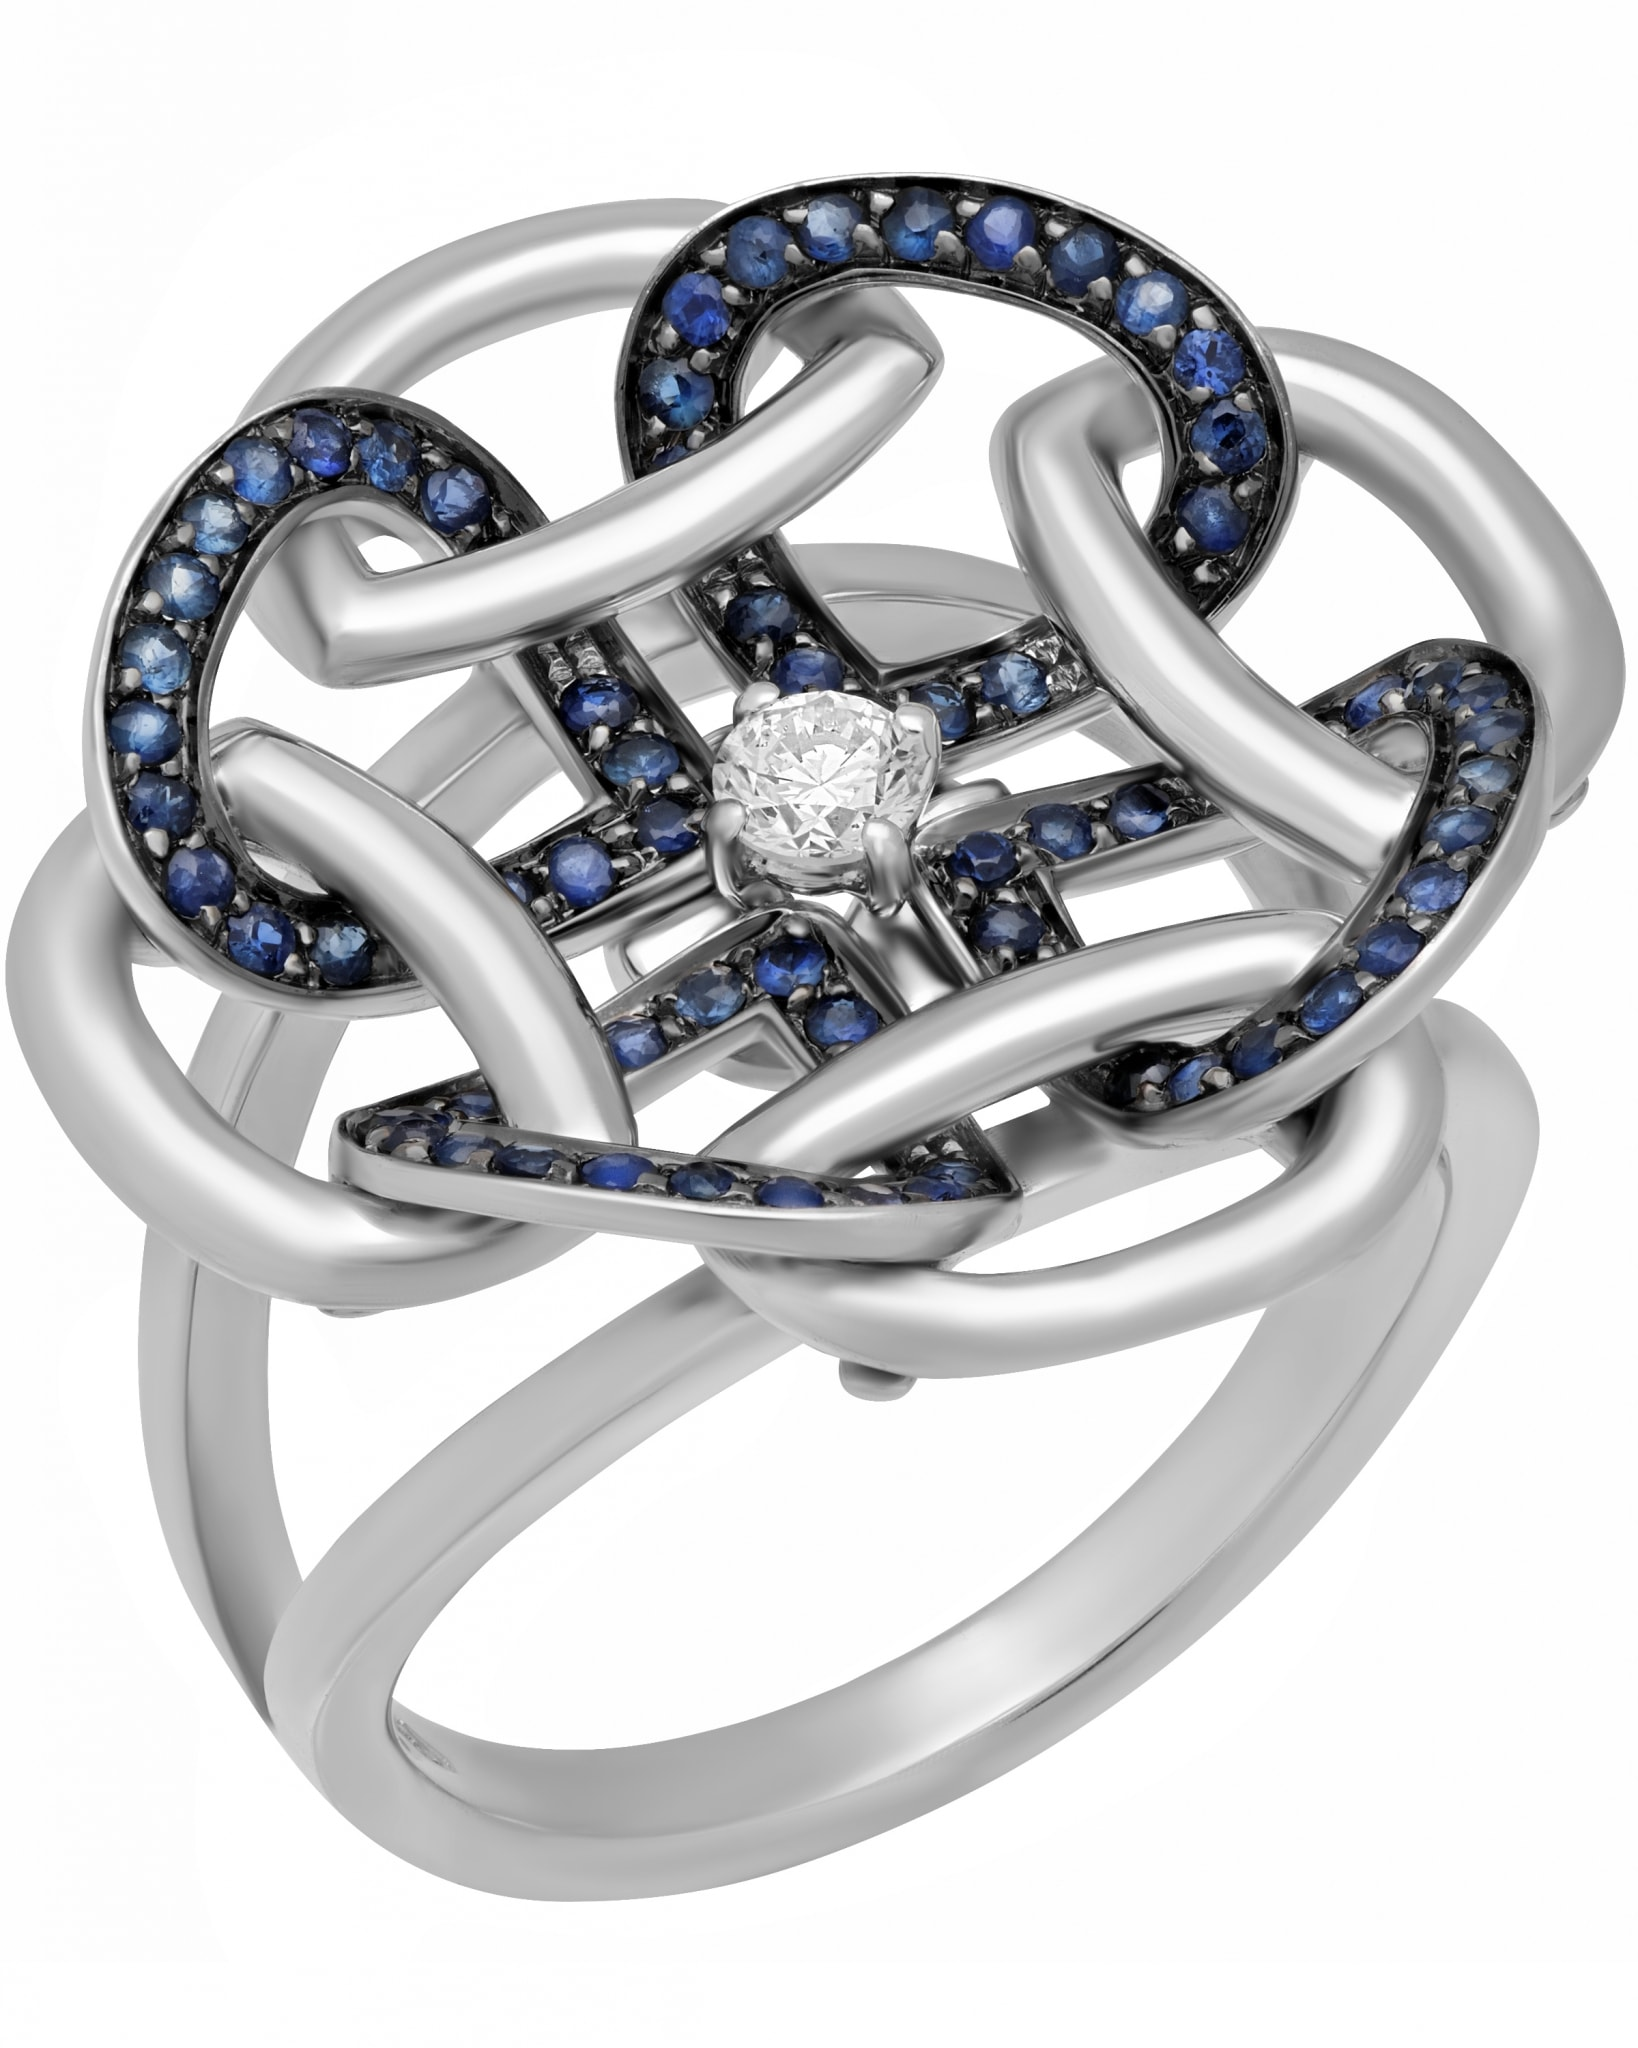 GIANNI LAZZARO – 18K White Gold, Diamonds, & Blue Sapphires, Ring sz 6.25